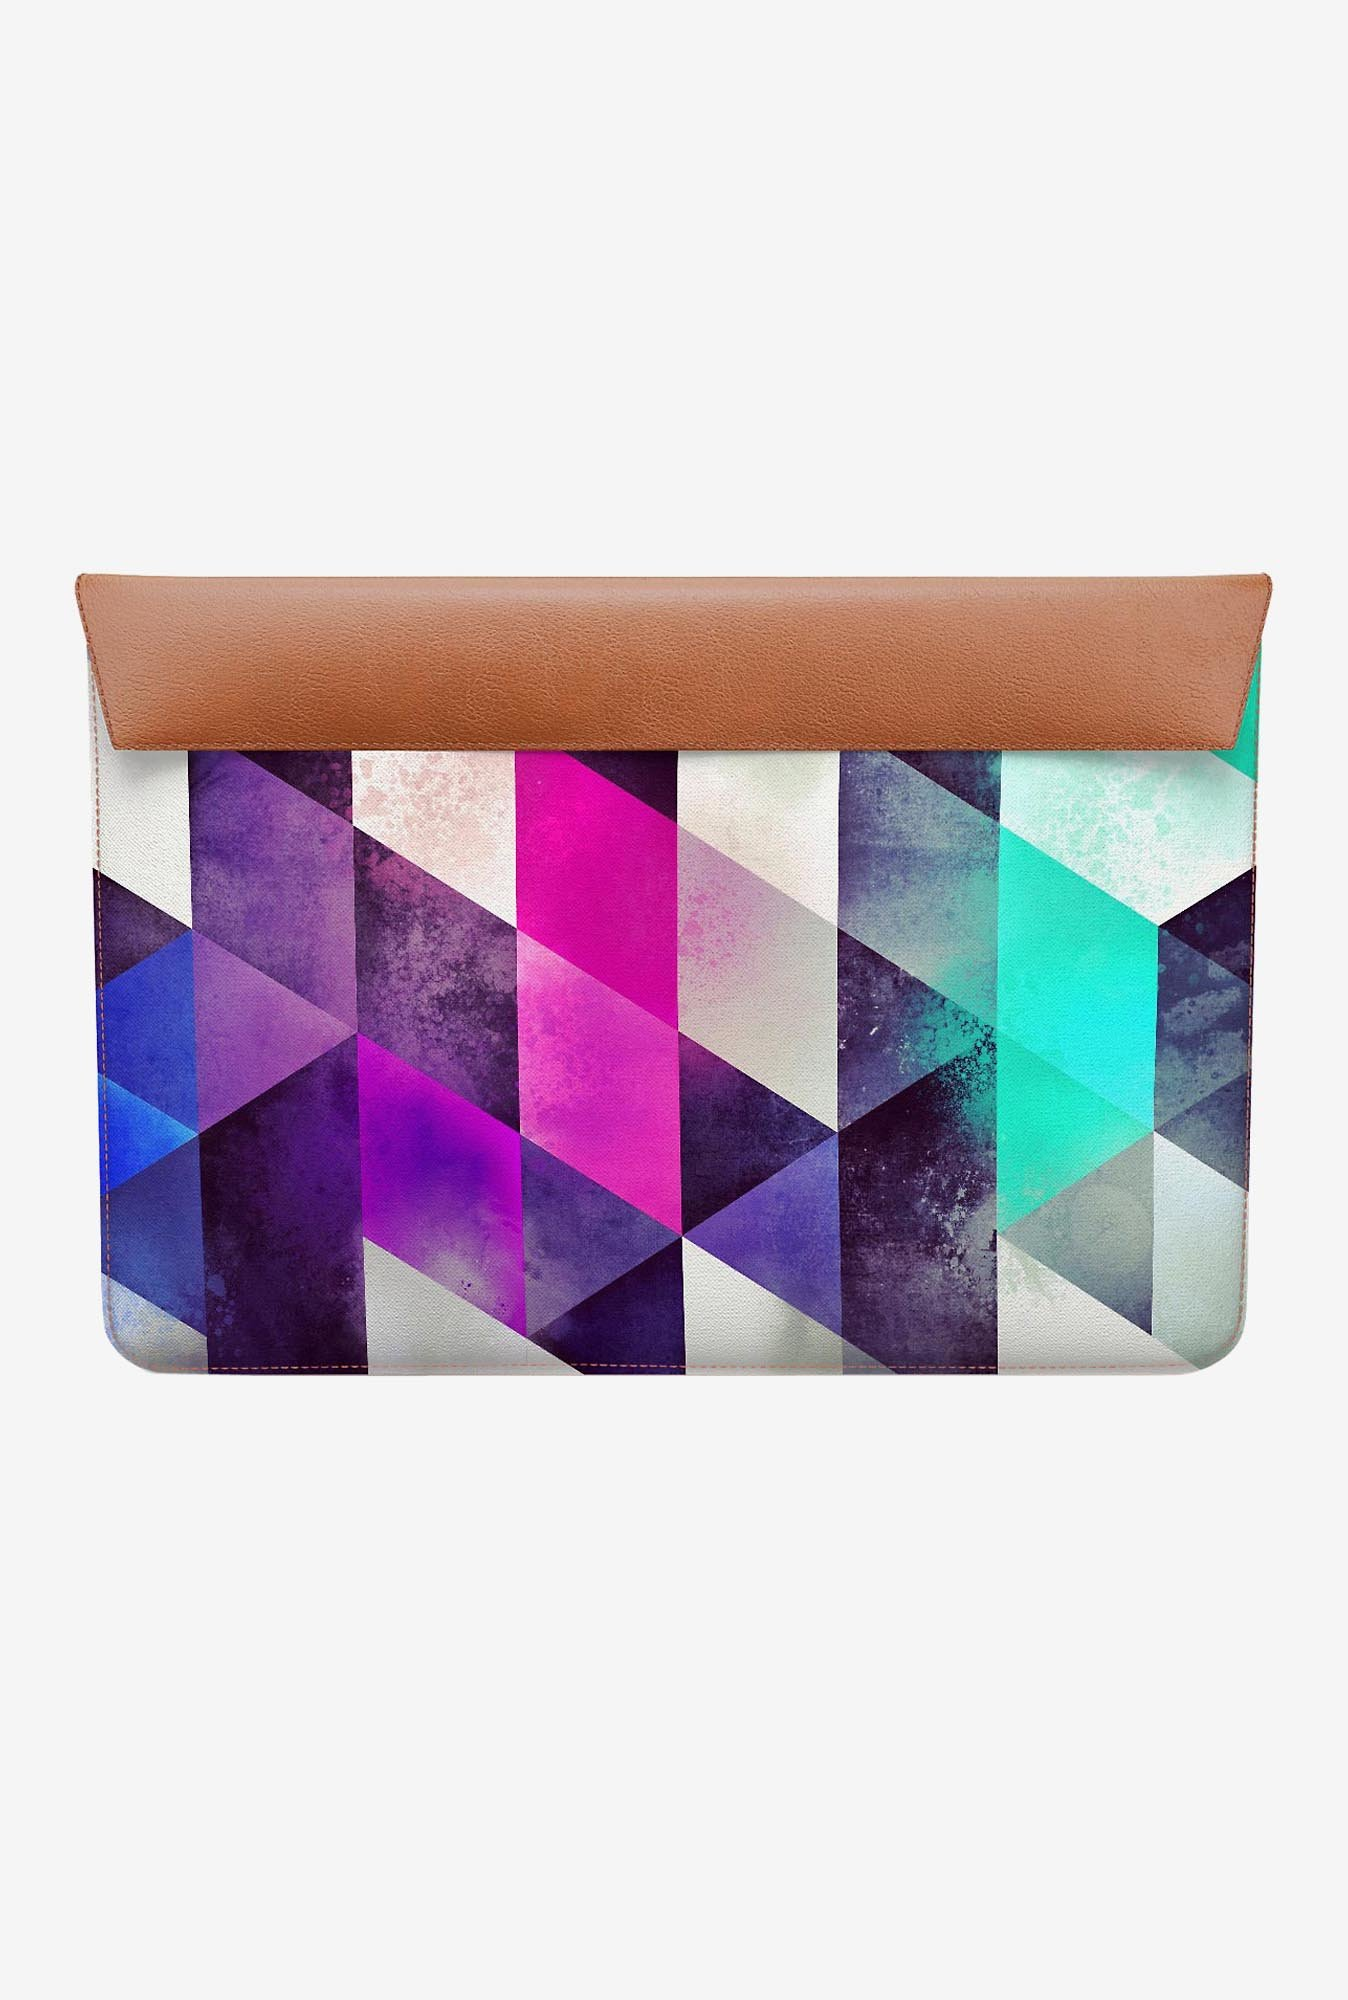 "DailyObjects Brykyn Hyyrt Macbook Air 11"" Envelope Sleeve"